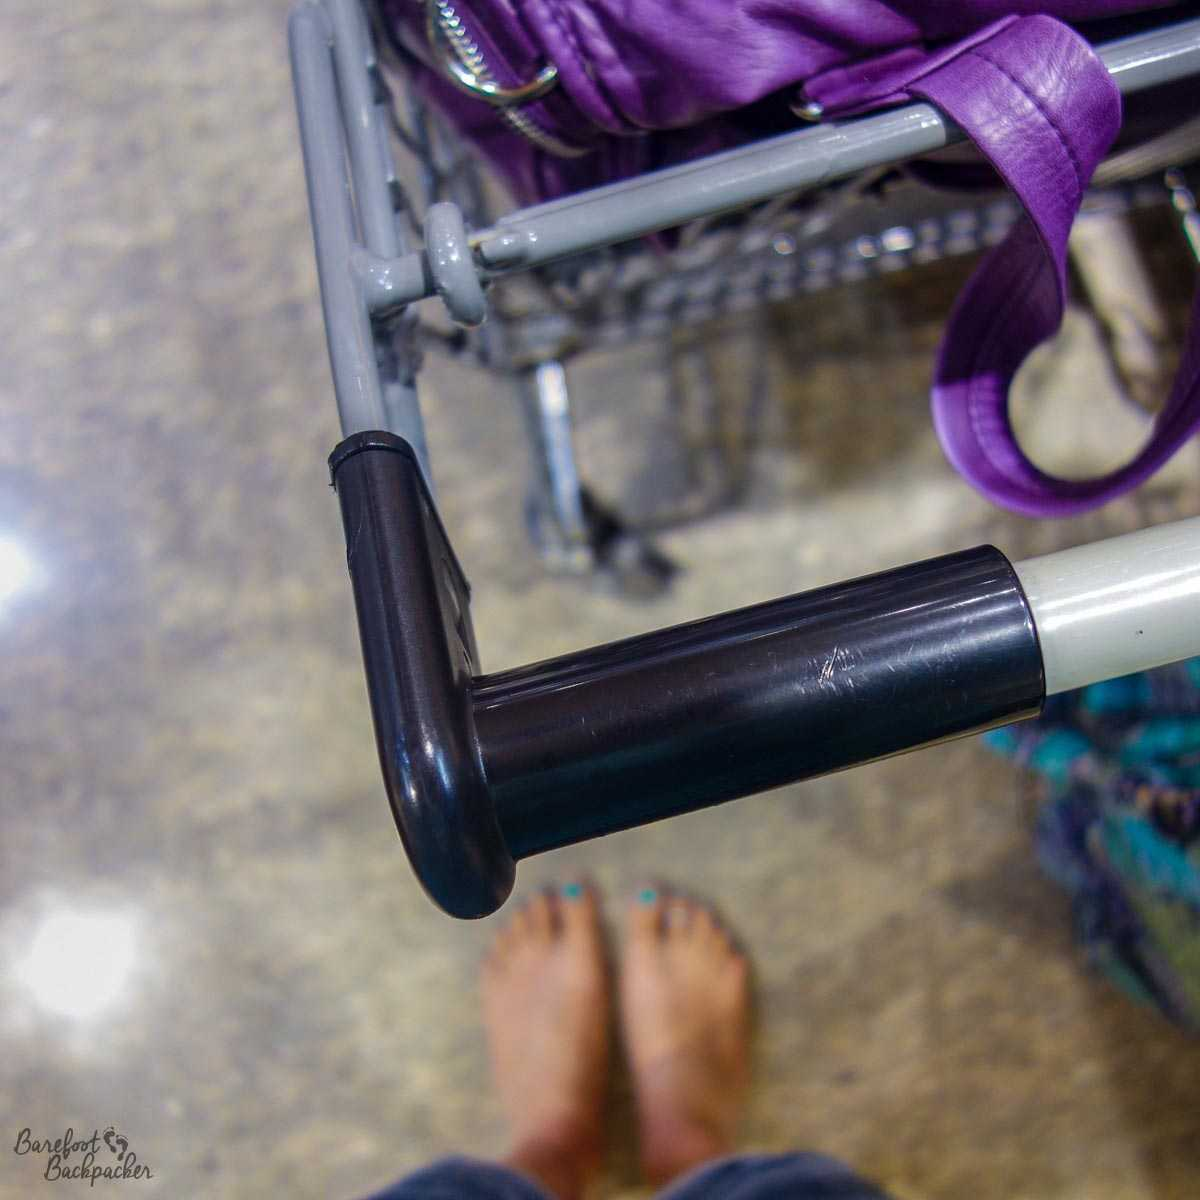 Barefoot in a supermarket in Nambour, Australia; feet in the background out of focus; a shopping trolley in the foreground, a purple bag in the trolley.